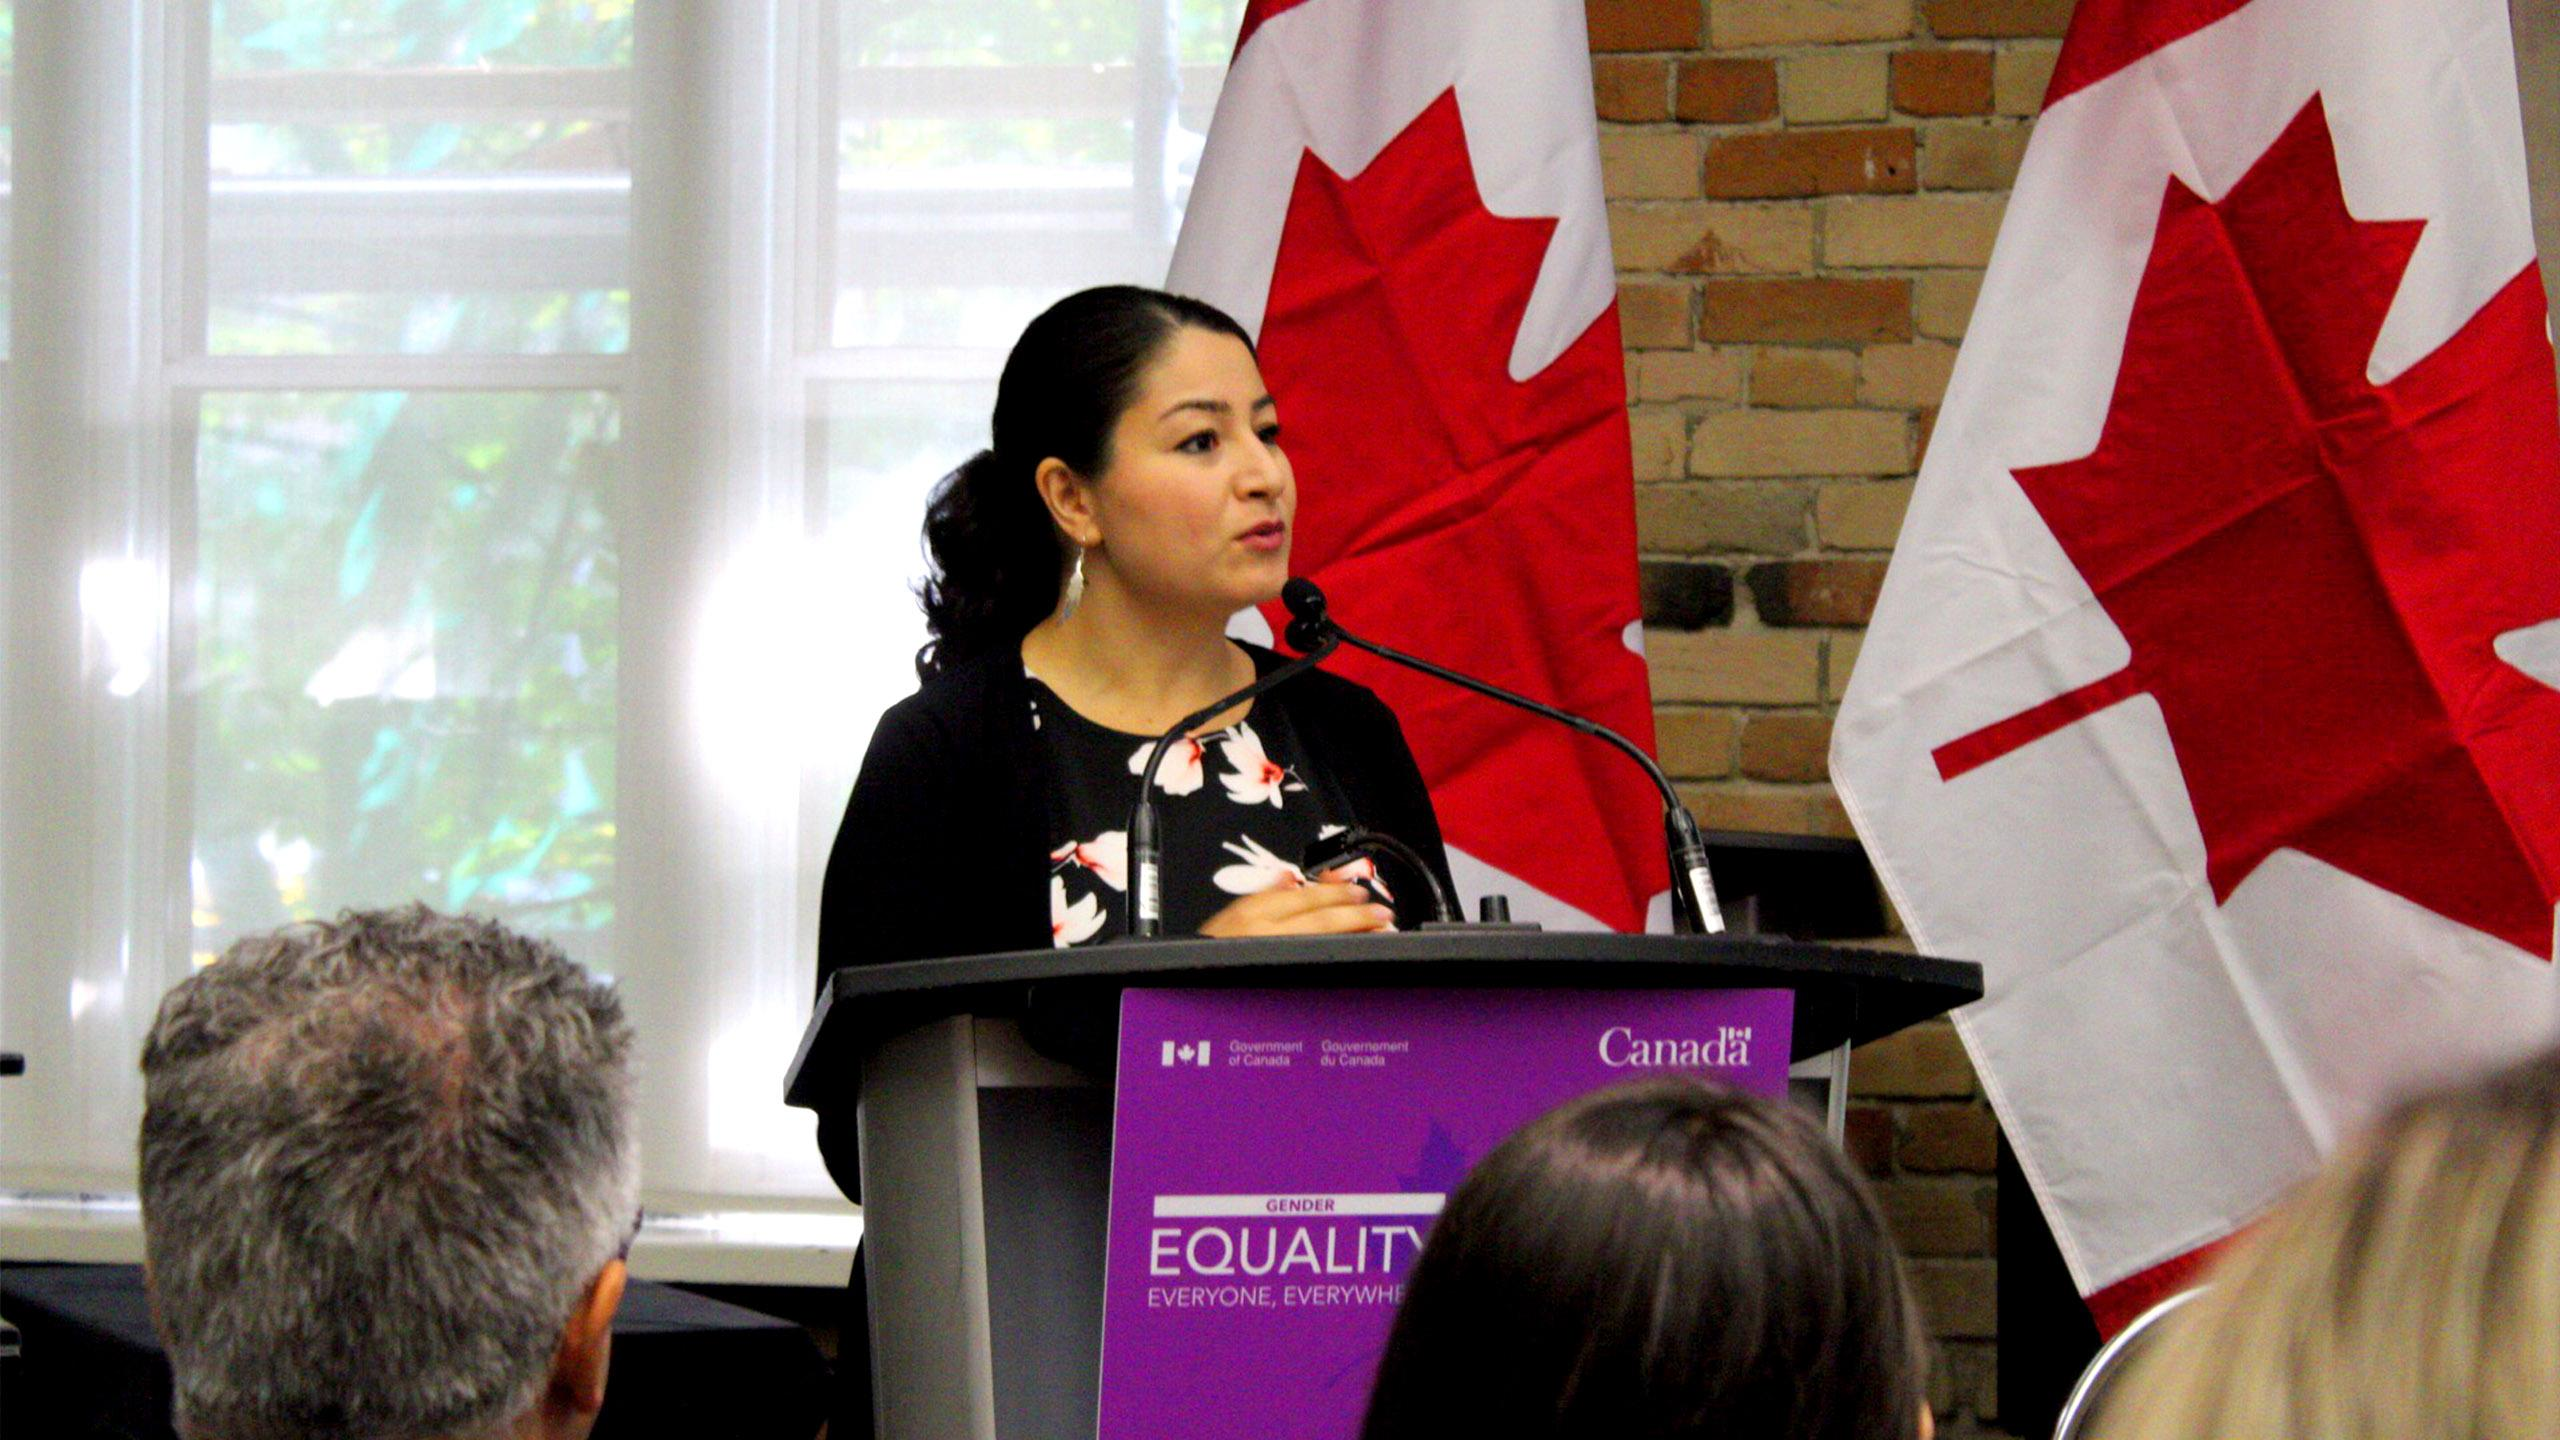 Minister for Women and Gender Equality Maryam Monsef speaks at a podium in front of Canadian flags